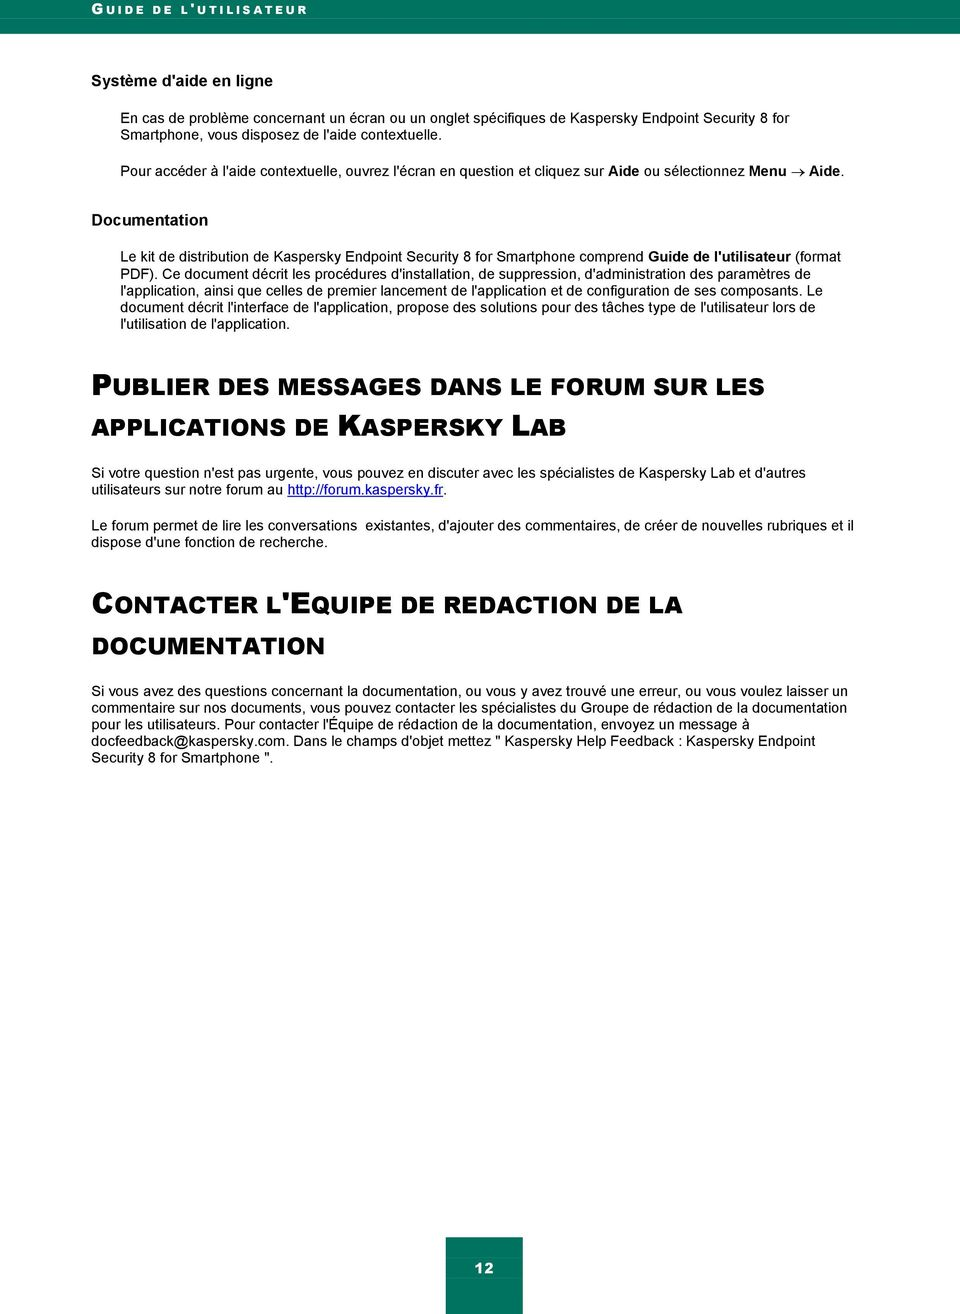 Documentation Le kit de distribution de Kaspersky Endpoint Security 8 for Smartphone comprend Guide de l'utilisateur (format PDF).